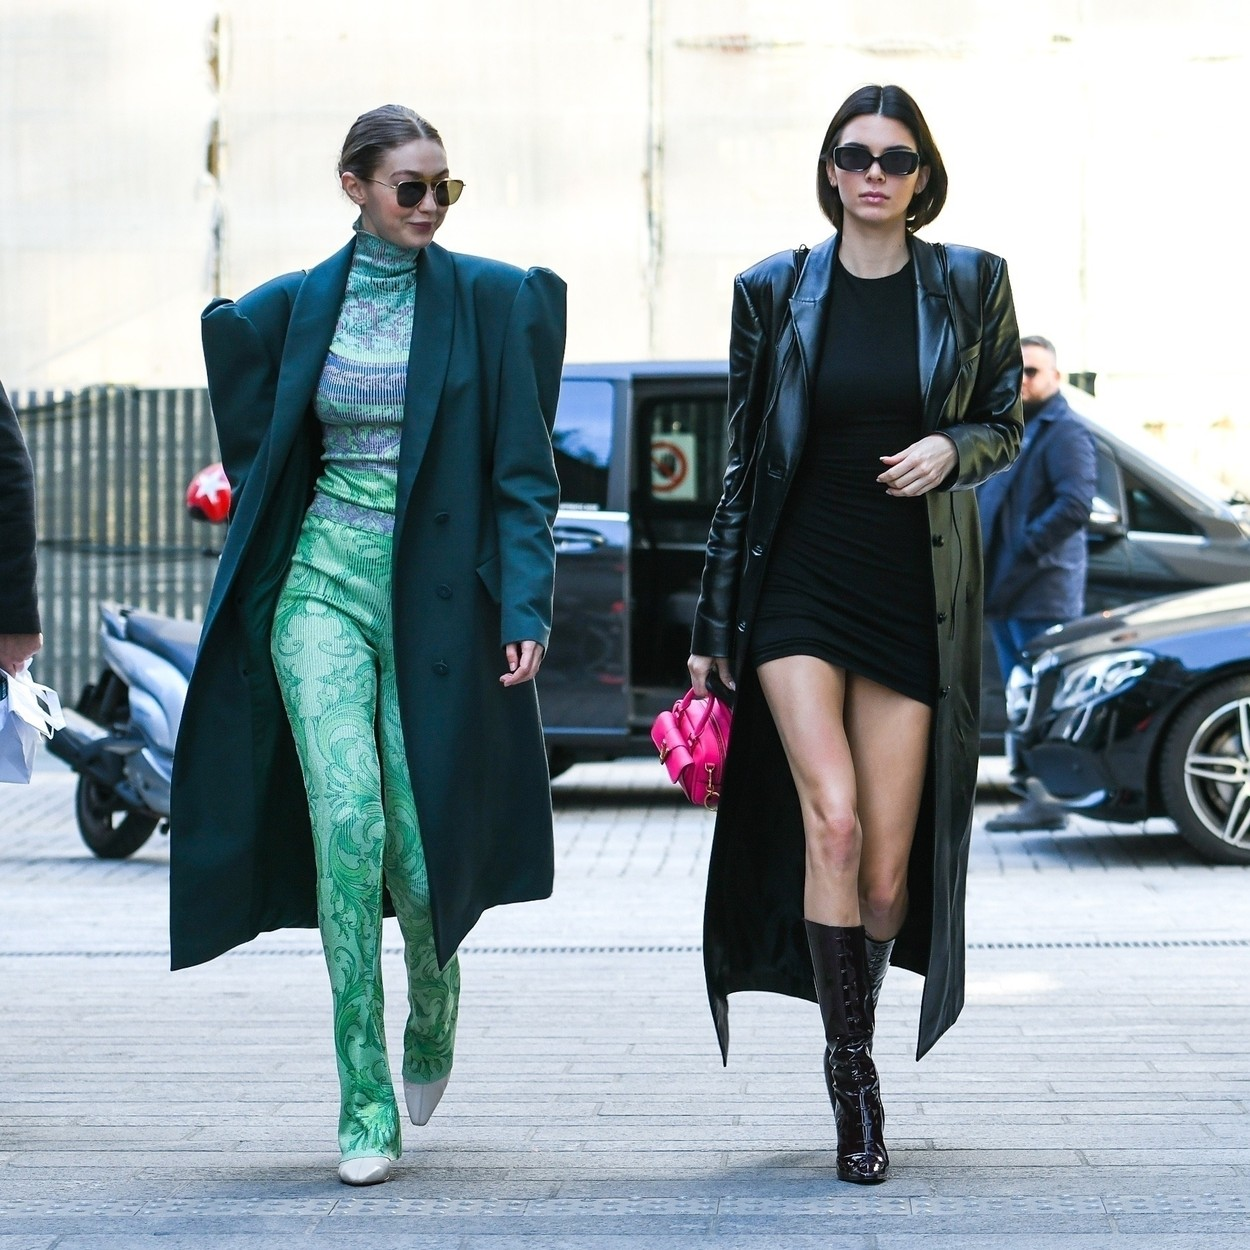 MILAN, ITALY  - The American Models Gigi Hadid and Kendall Jenner are seen arriving at Versace Fashion Show in Milan, Italy.  *UK Clients - Pictures Containing Children Please Pixelate Face Prior To Publication*, Image: 500120273, License: Rights-managed, Restrictions: RIGHTS: WORLDWIDE EXCEPT IN FRANCE, GERMANY, ITALY, SWITZERLAND, Model Release: no, Credit line: BACKGRID / Backgrid UK / Profimedia